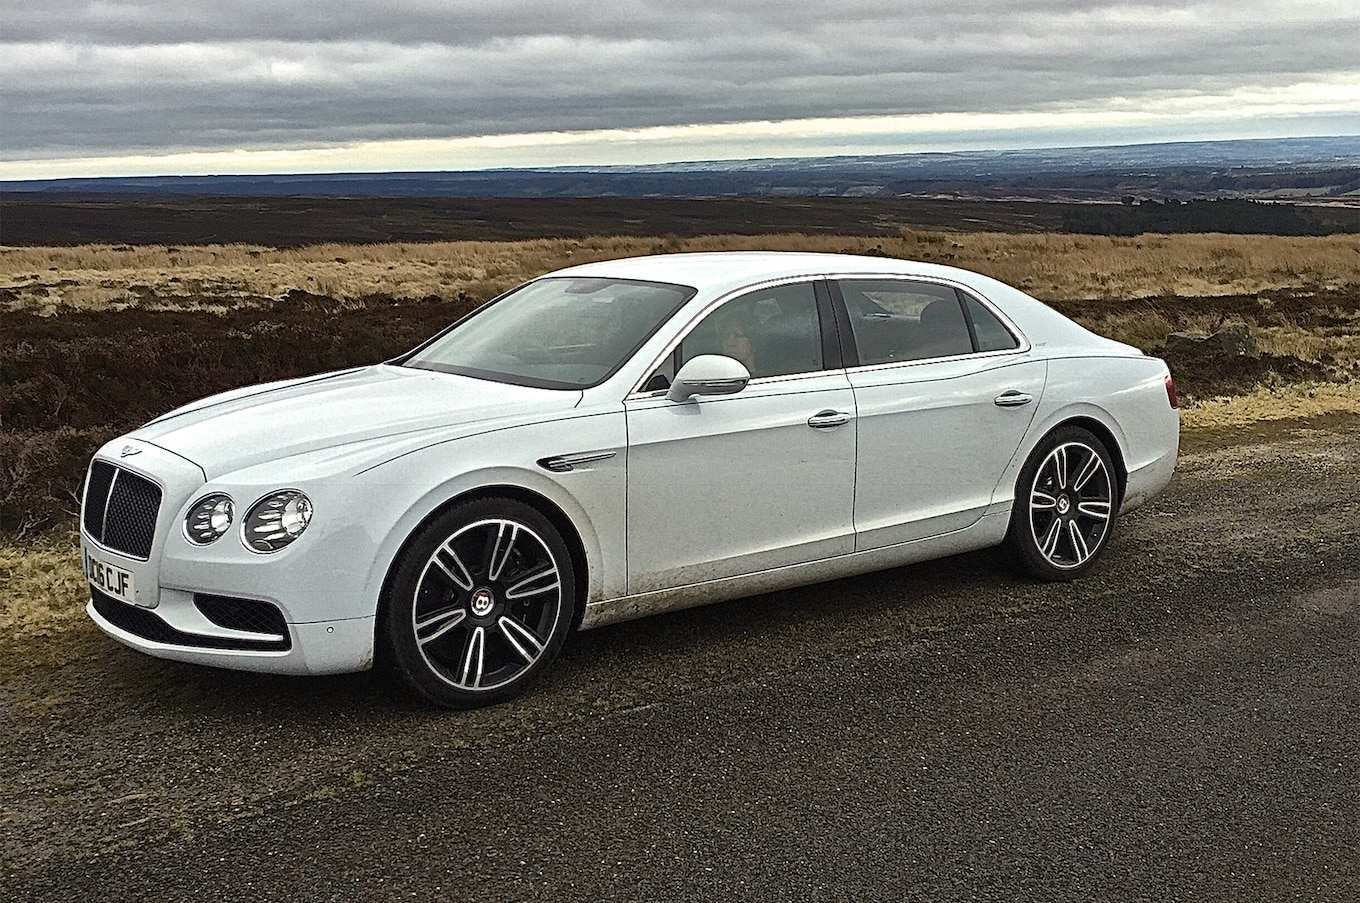 17 All New 2019 Bentley Flying Spur Price And Release Date